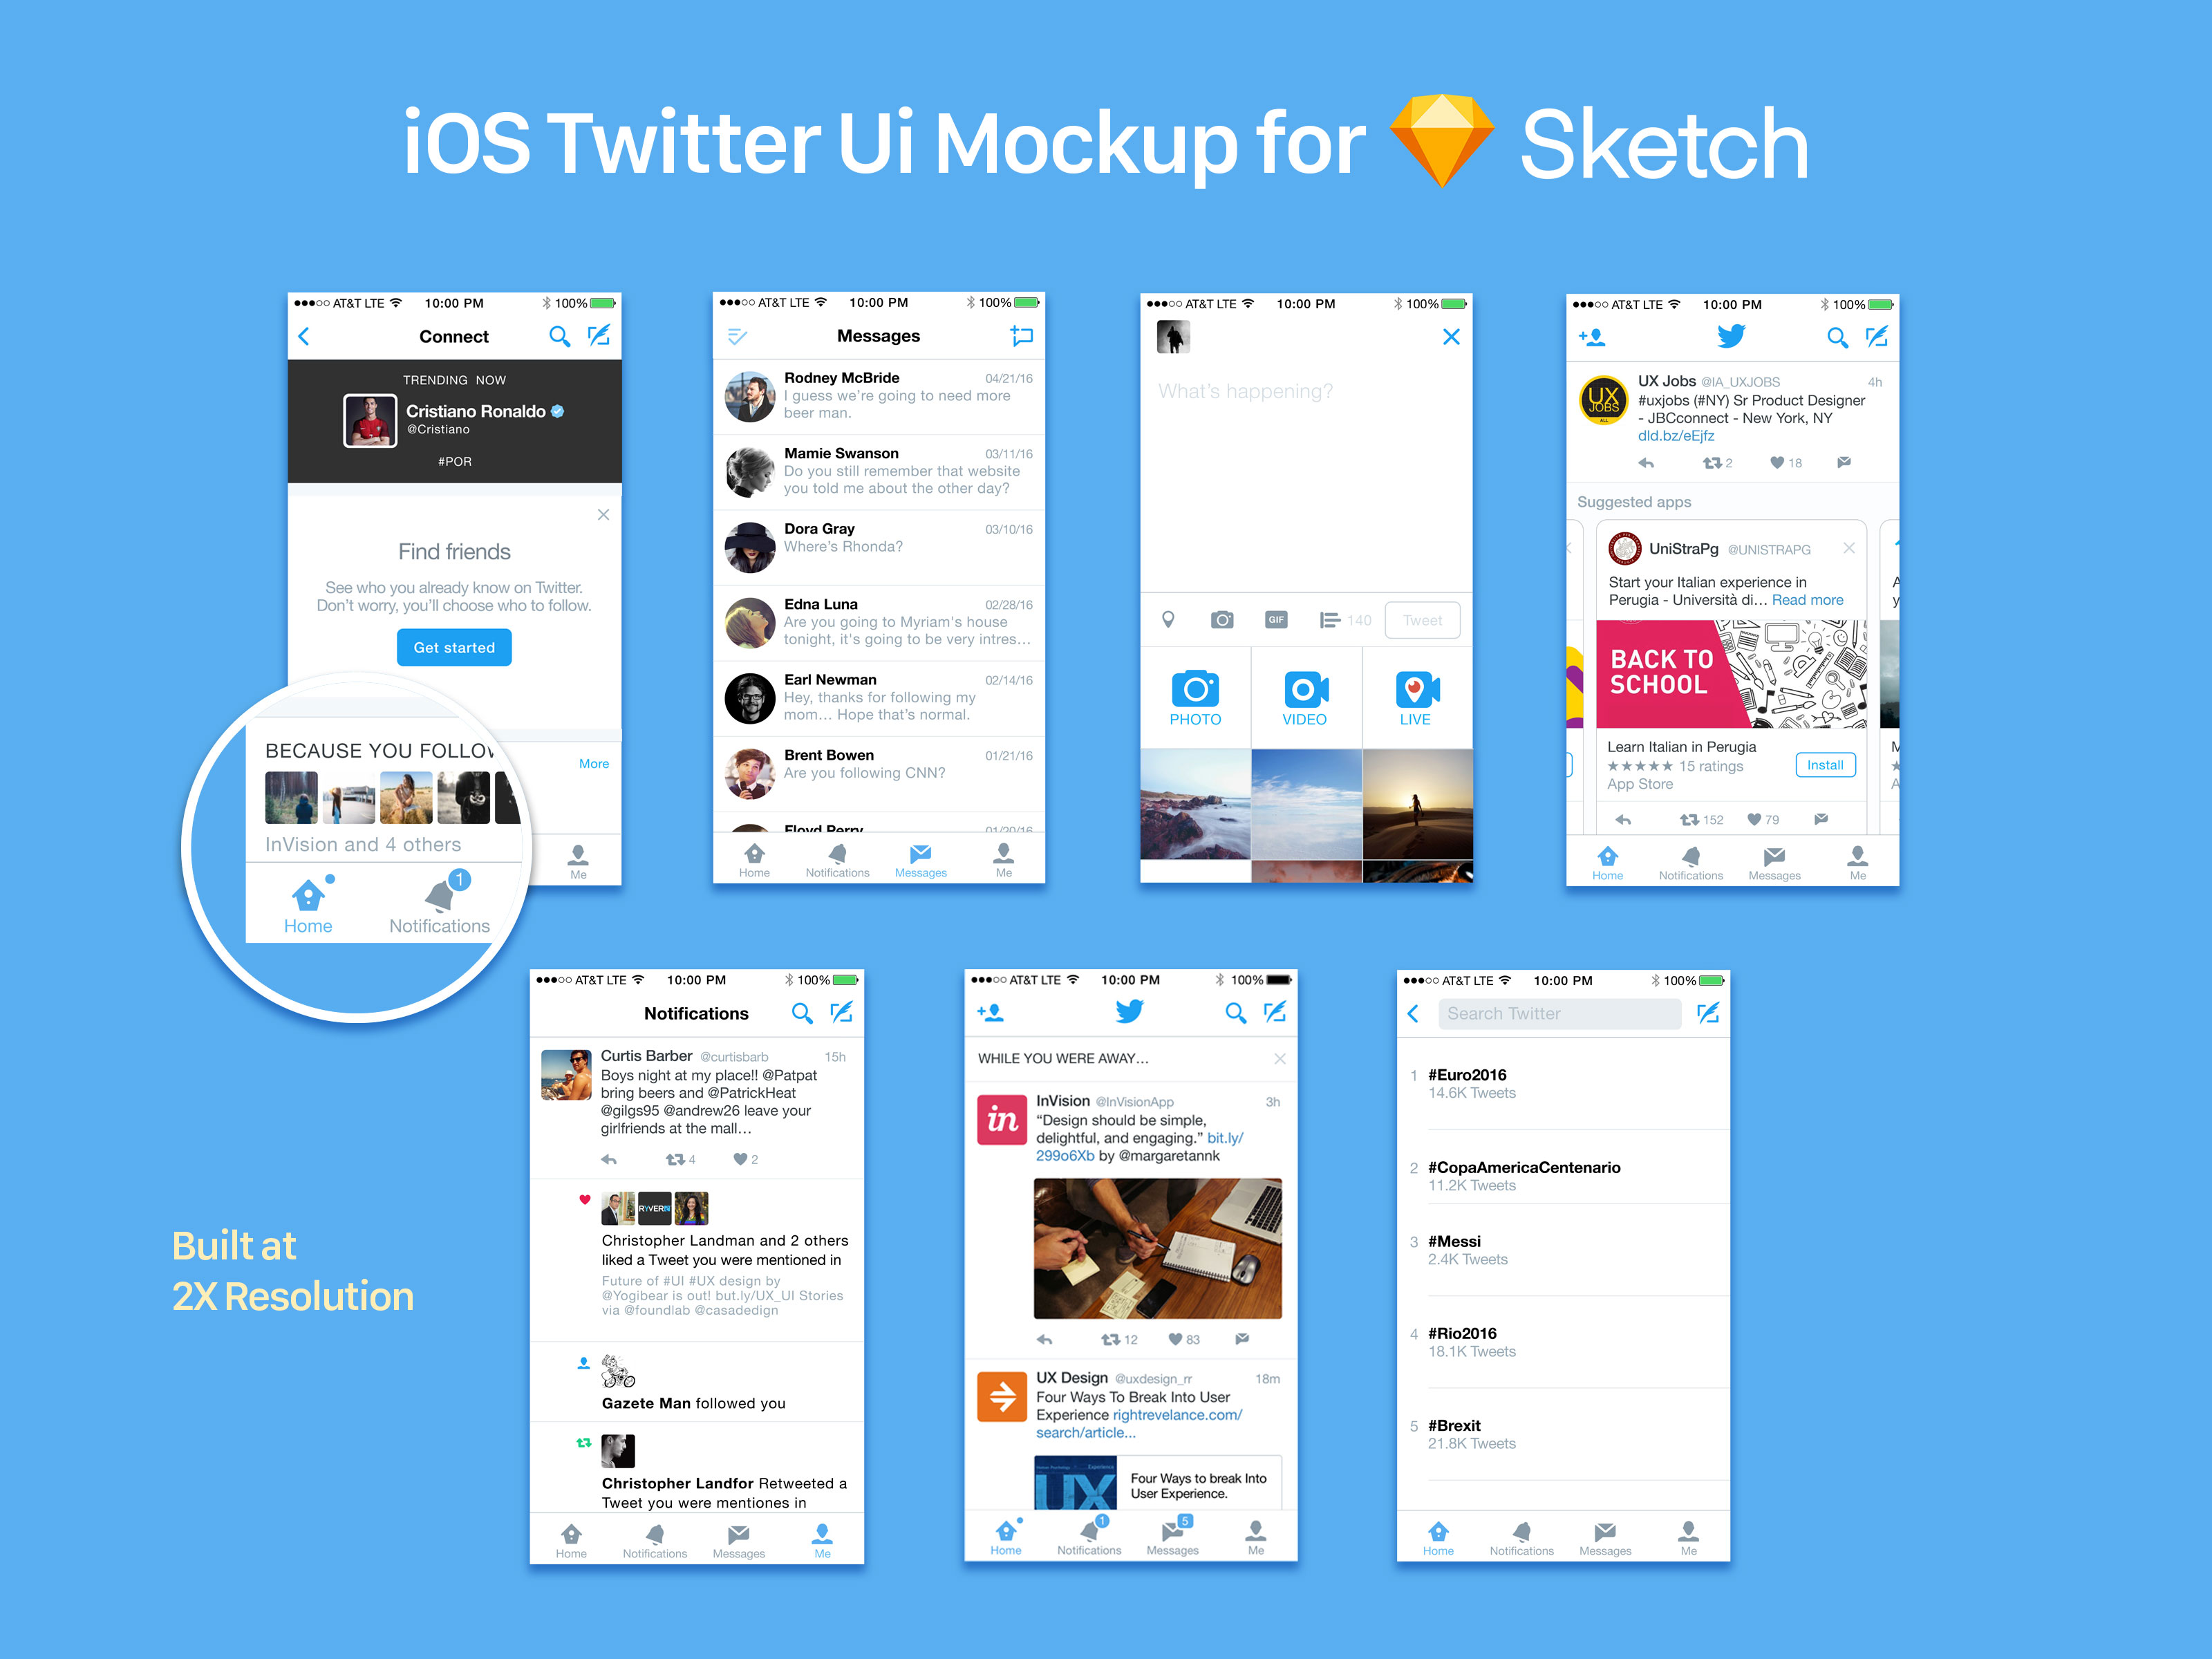 Free iOS Twitter UI Social Media Mockup For Sketch - Good